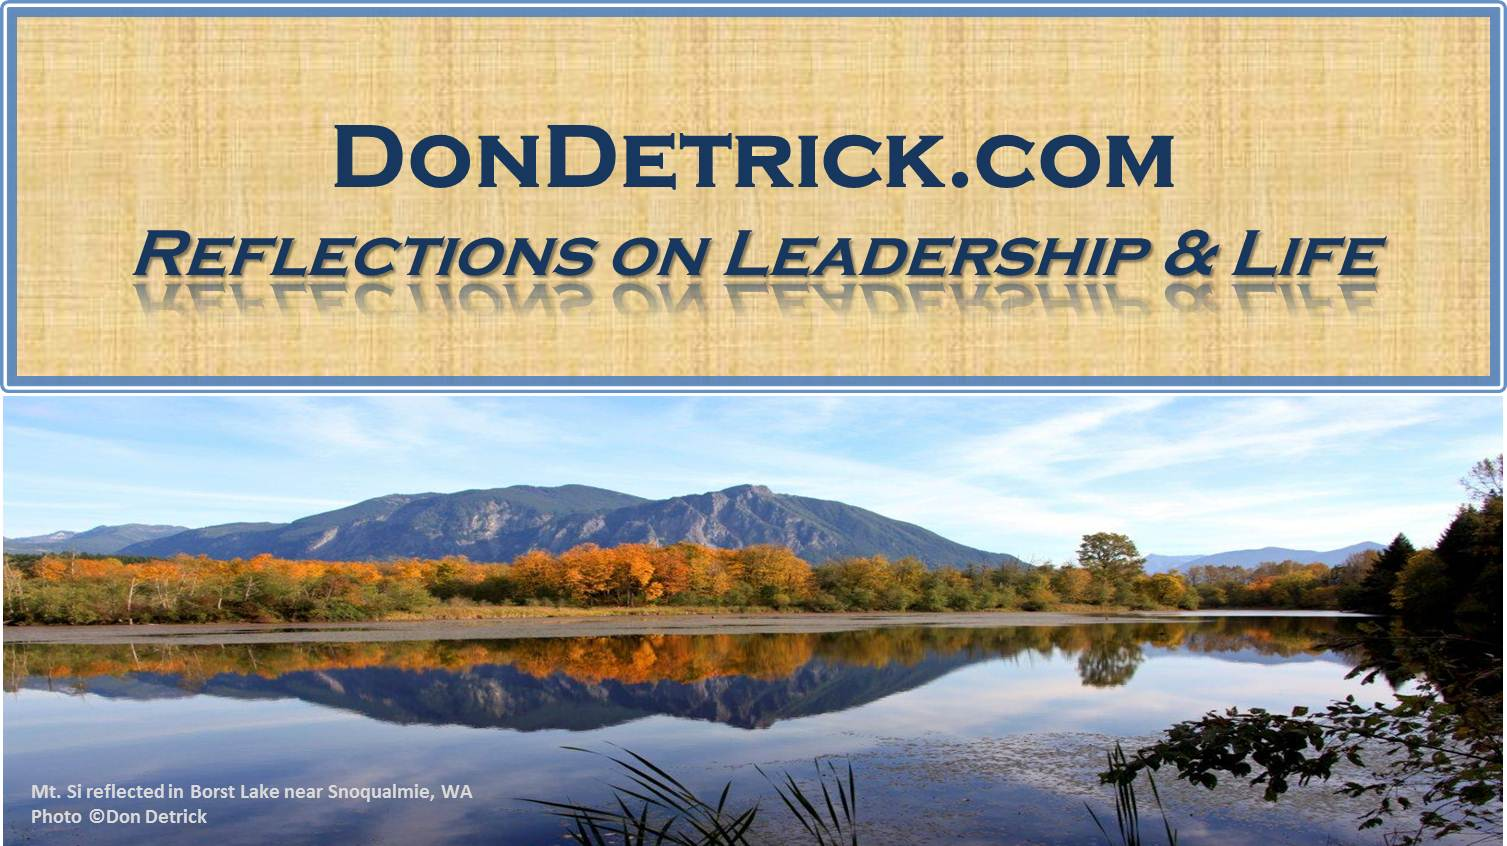 Dondetrick.com header with graphic and text